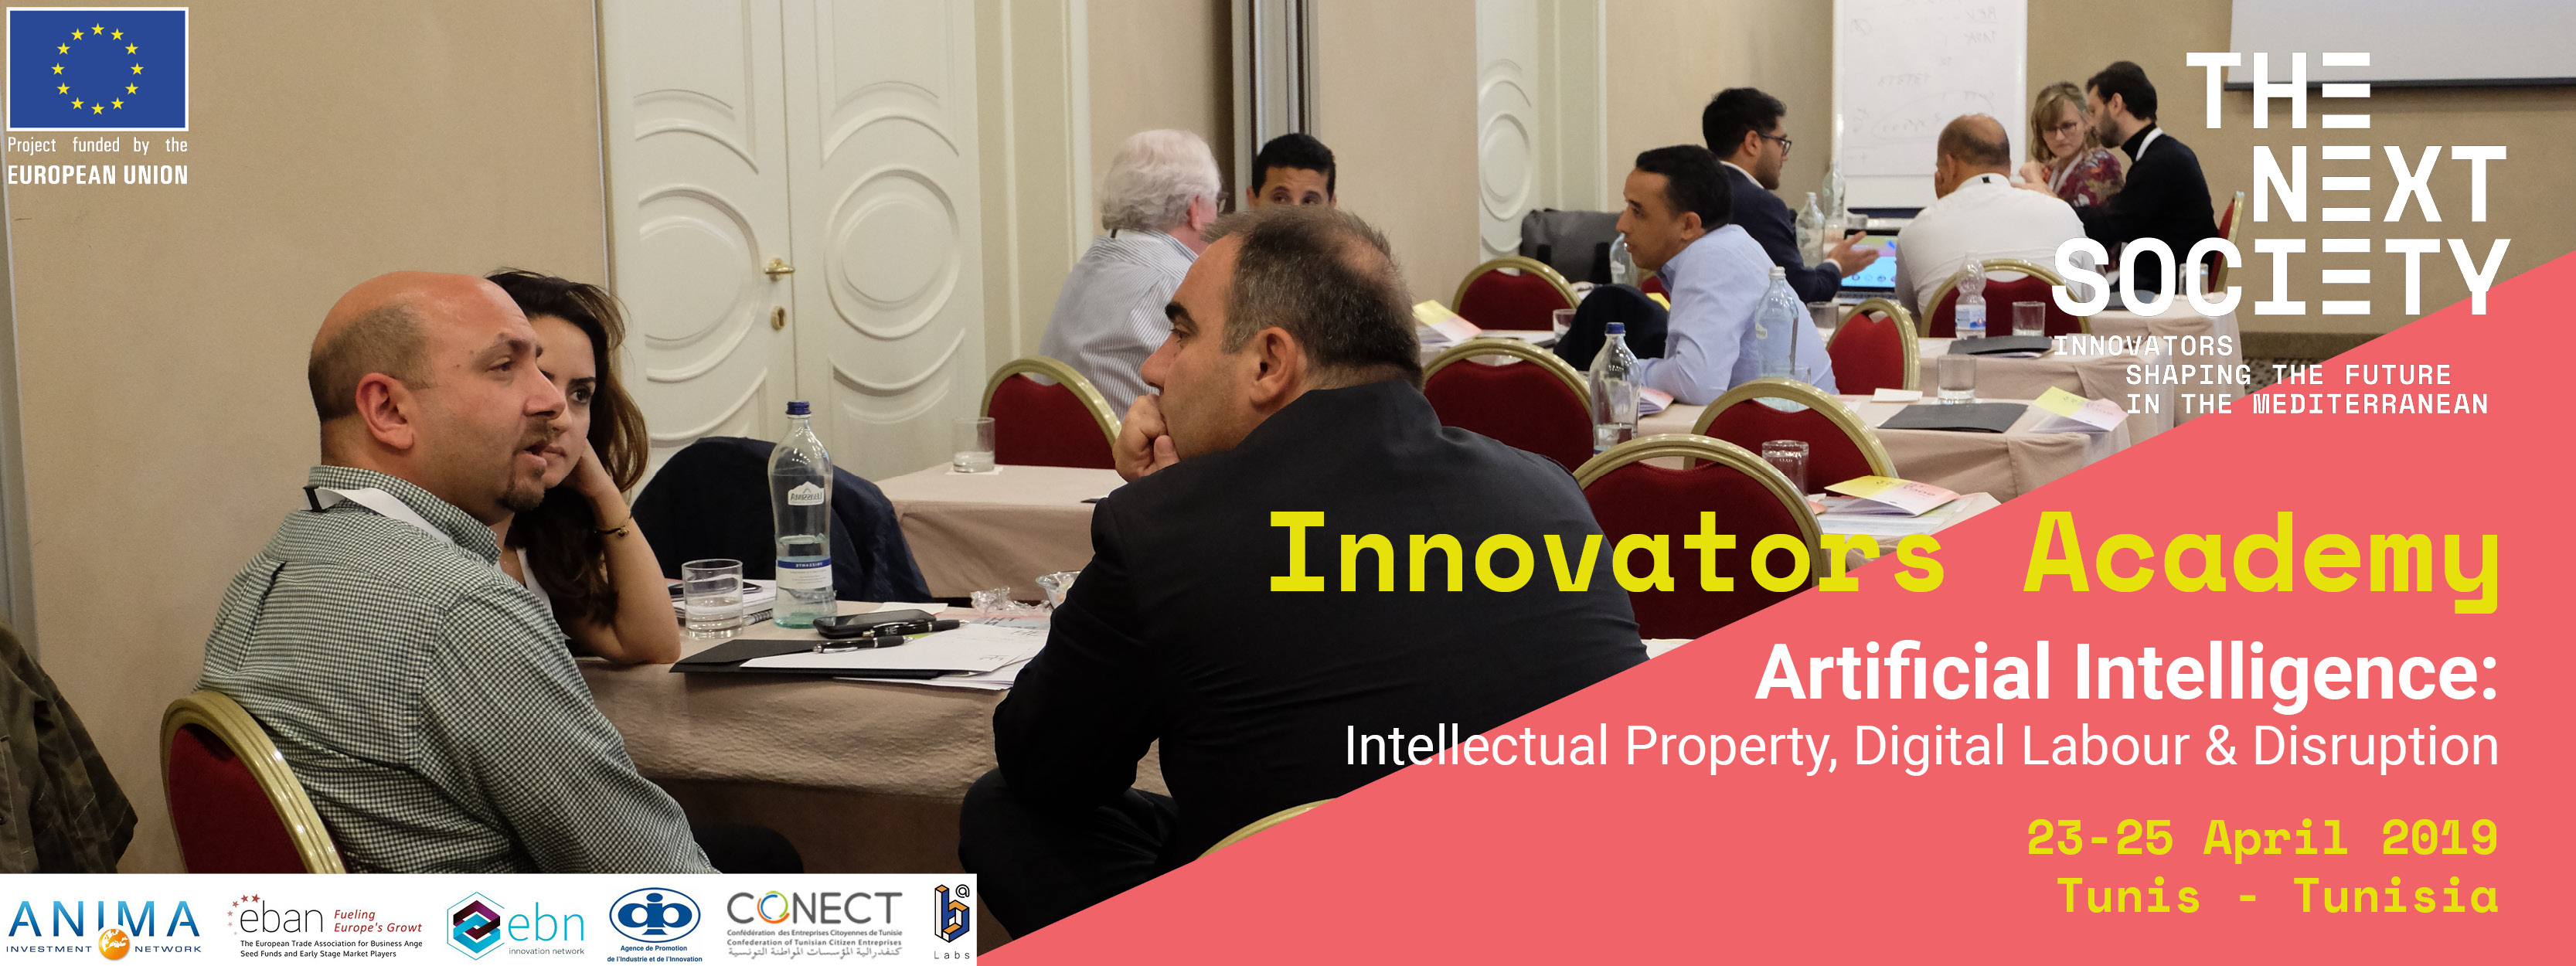 Innovators Academy in Tunis banner